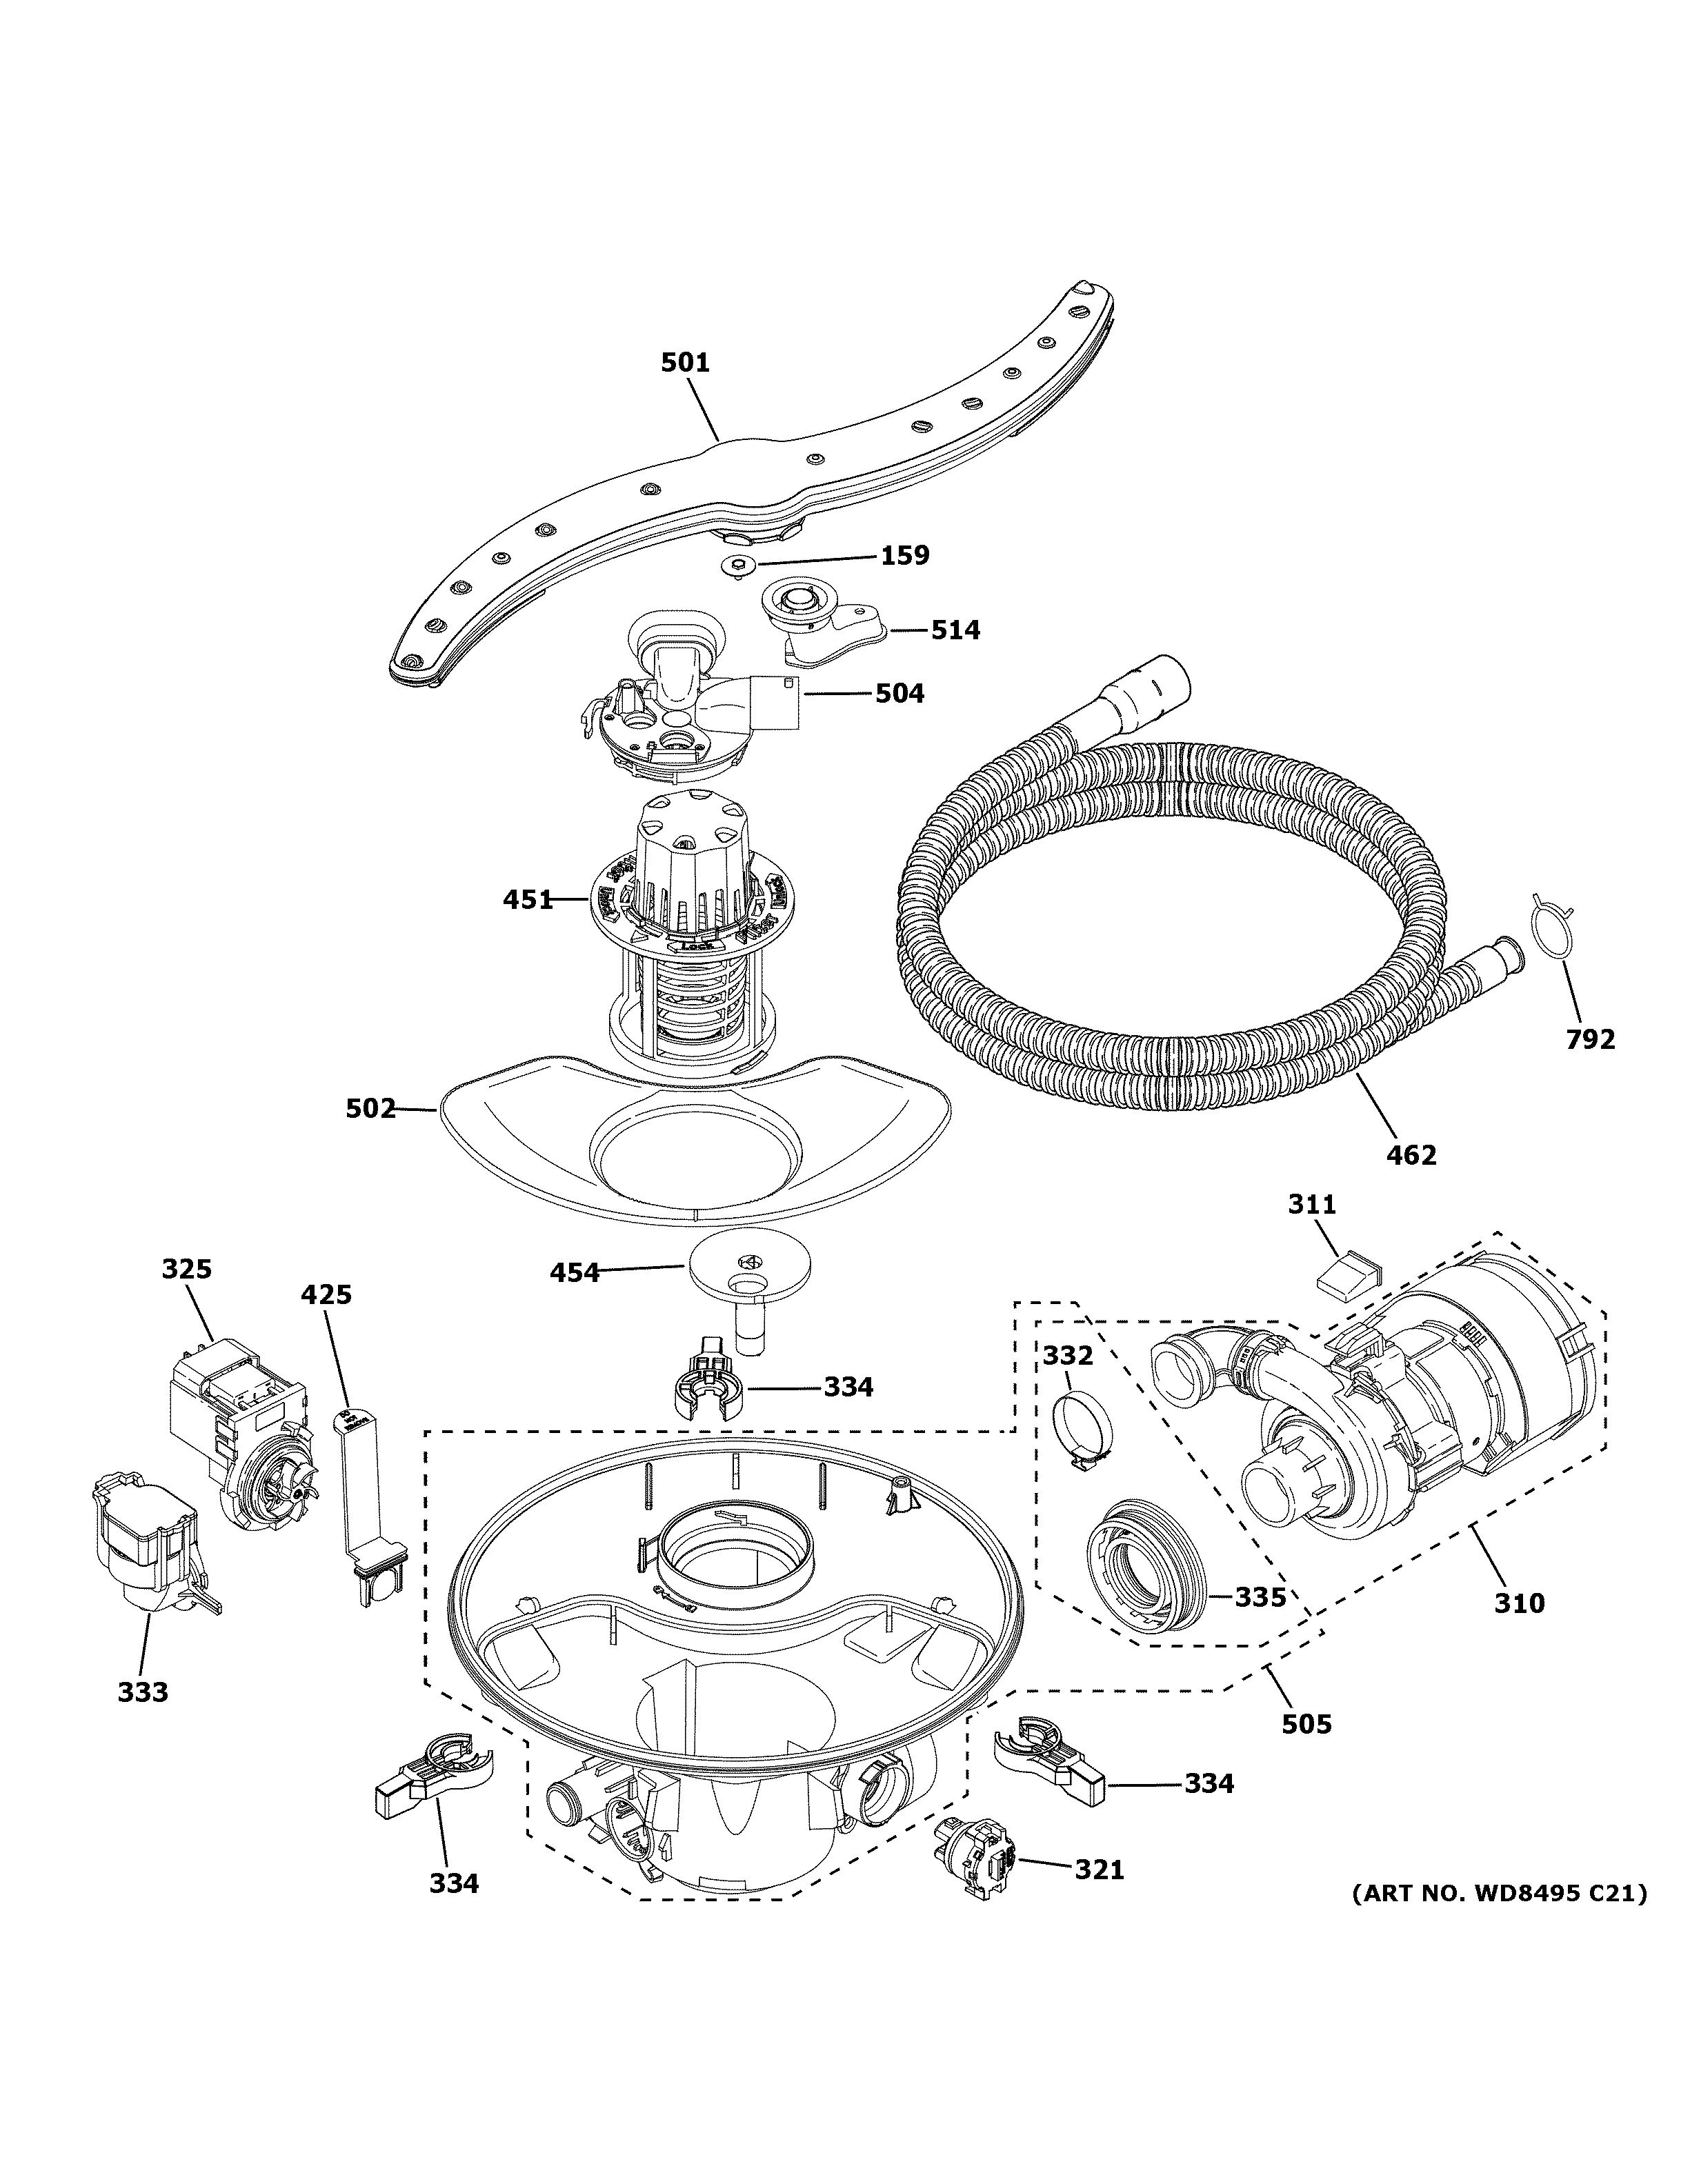 Assembly View For Motor Sump Amp Filter Assembly